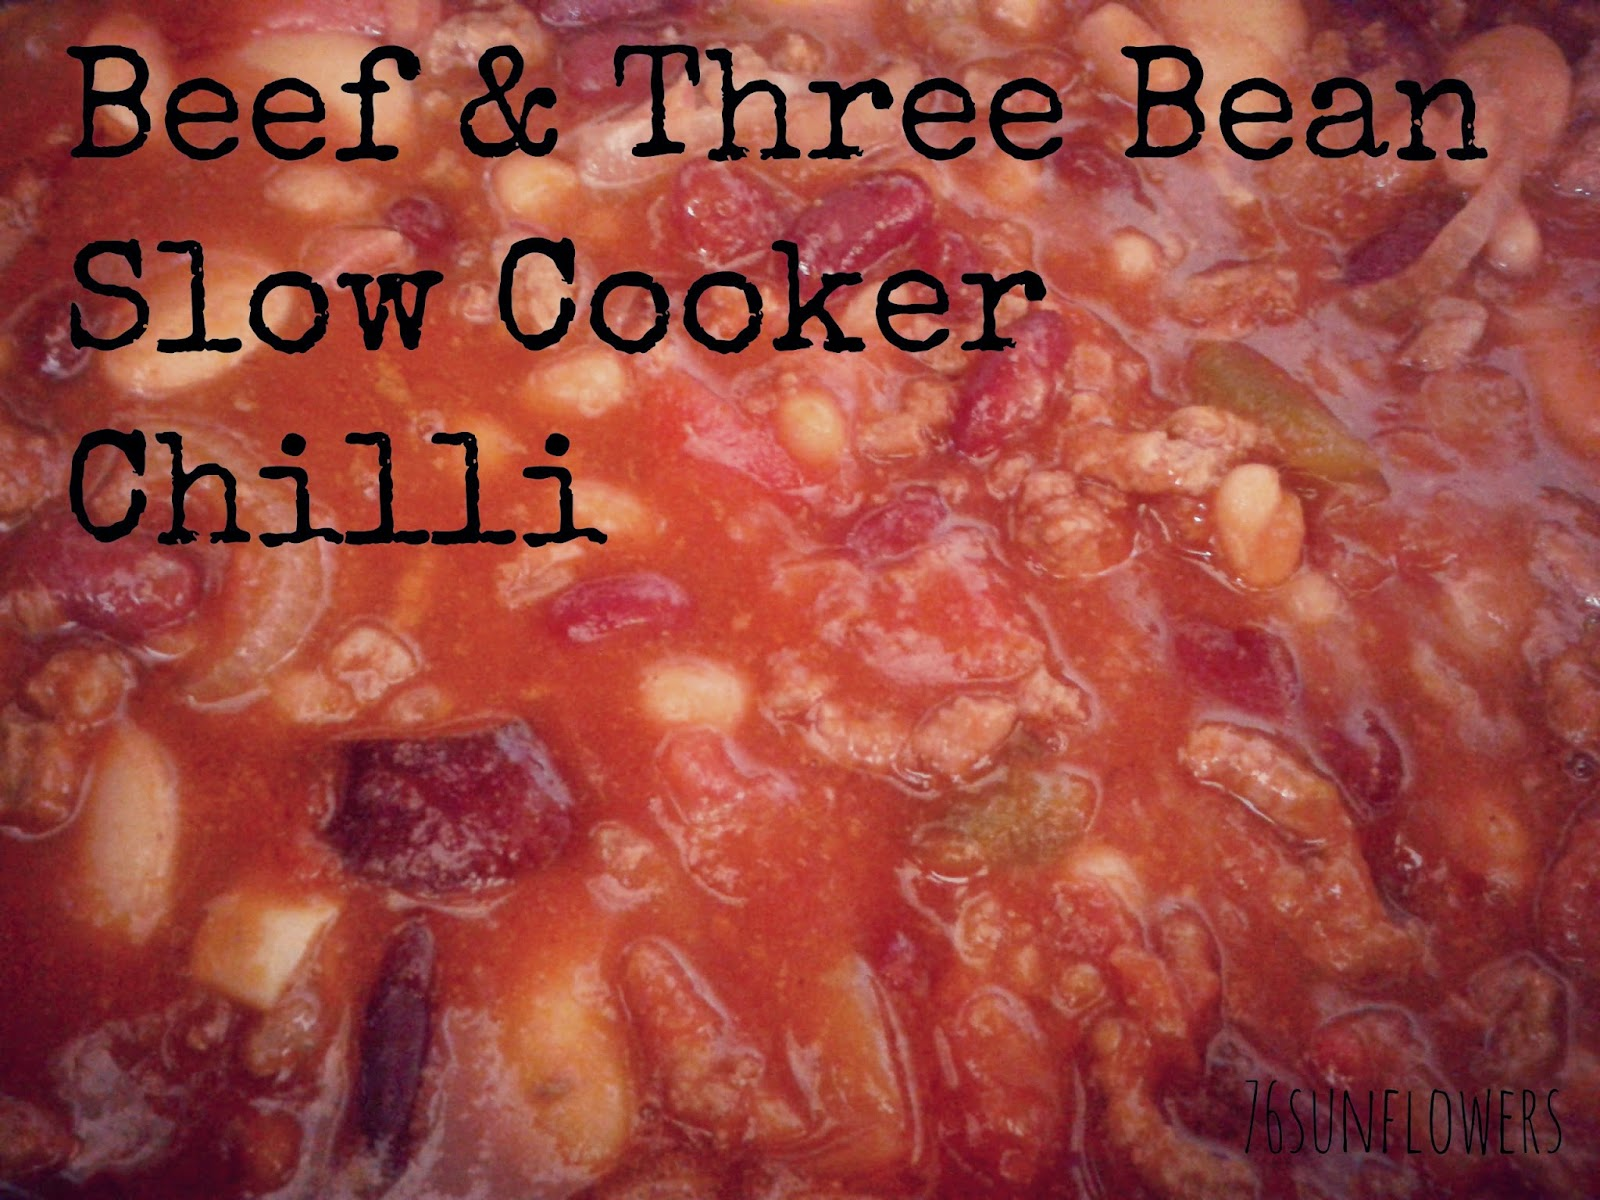 Beef & Three Bean Slow Cooker Chilli